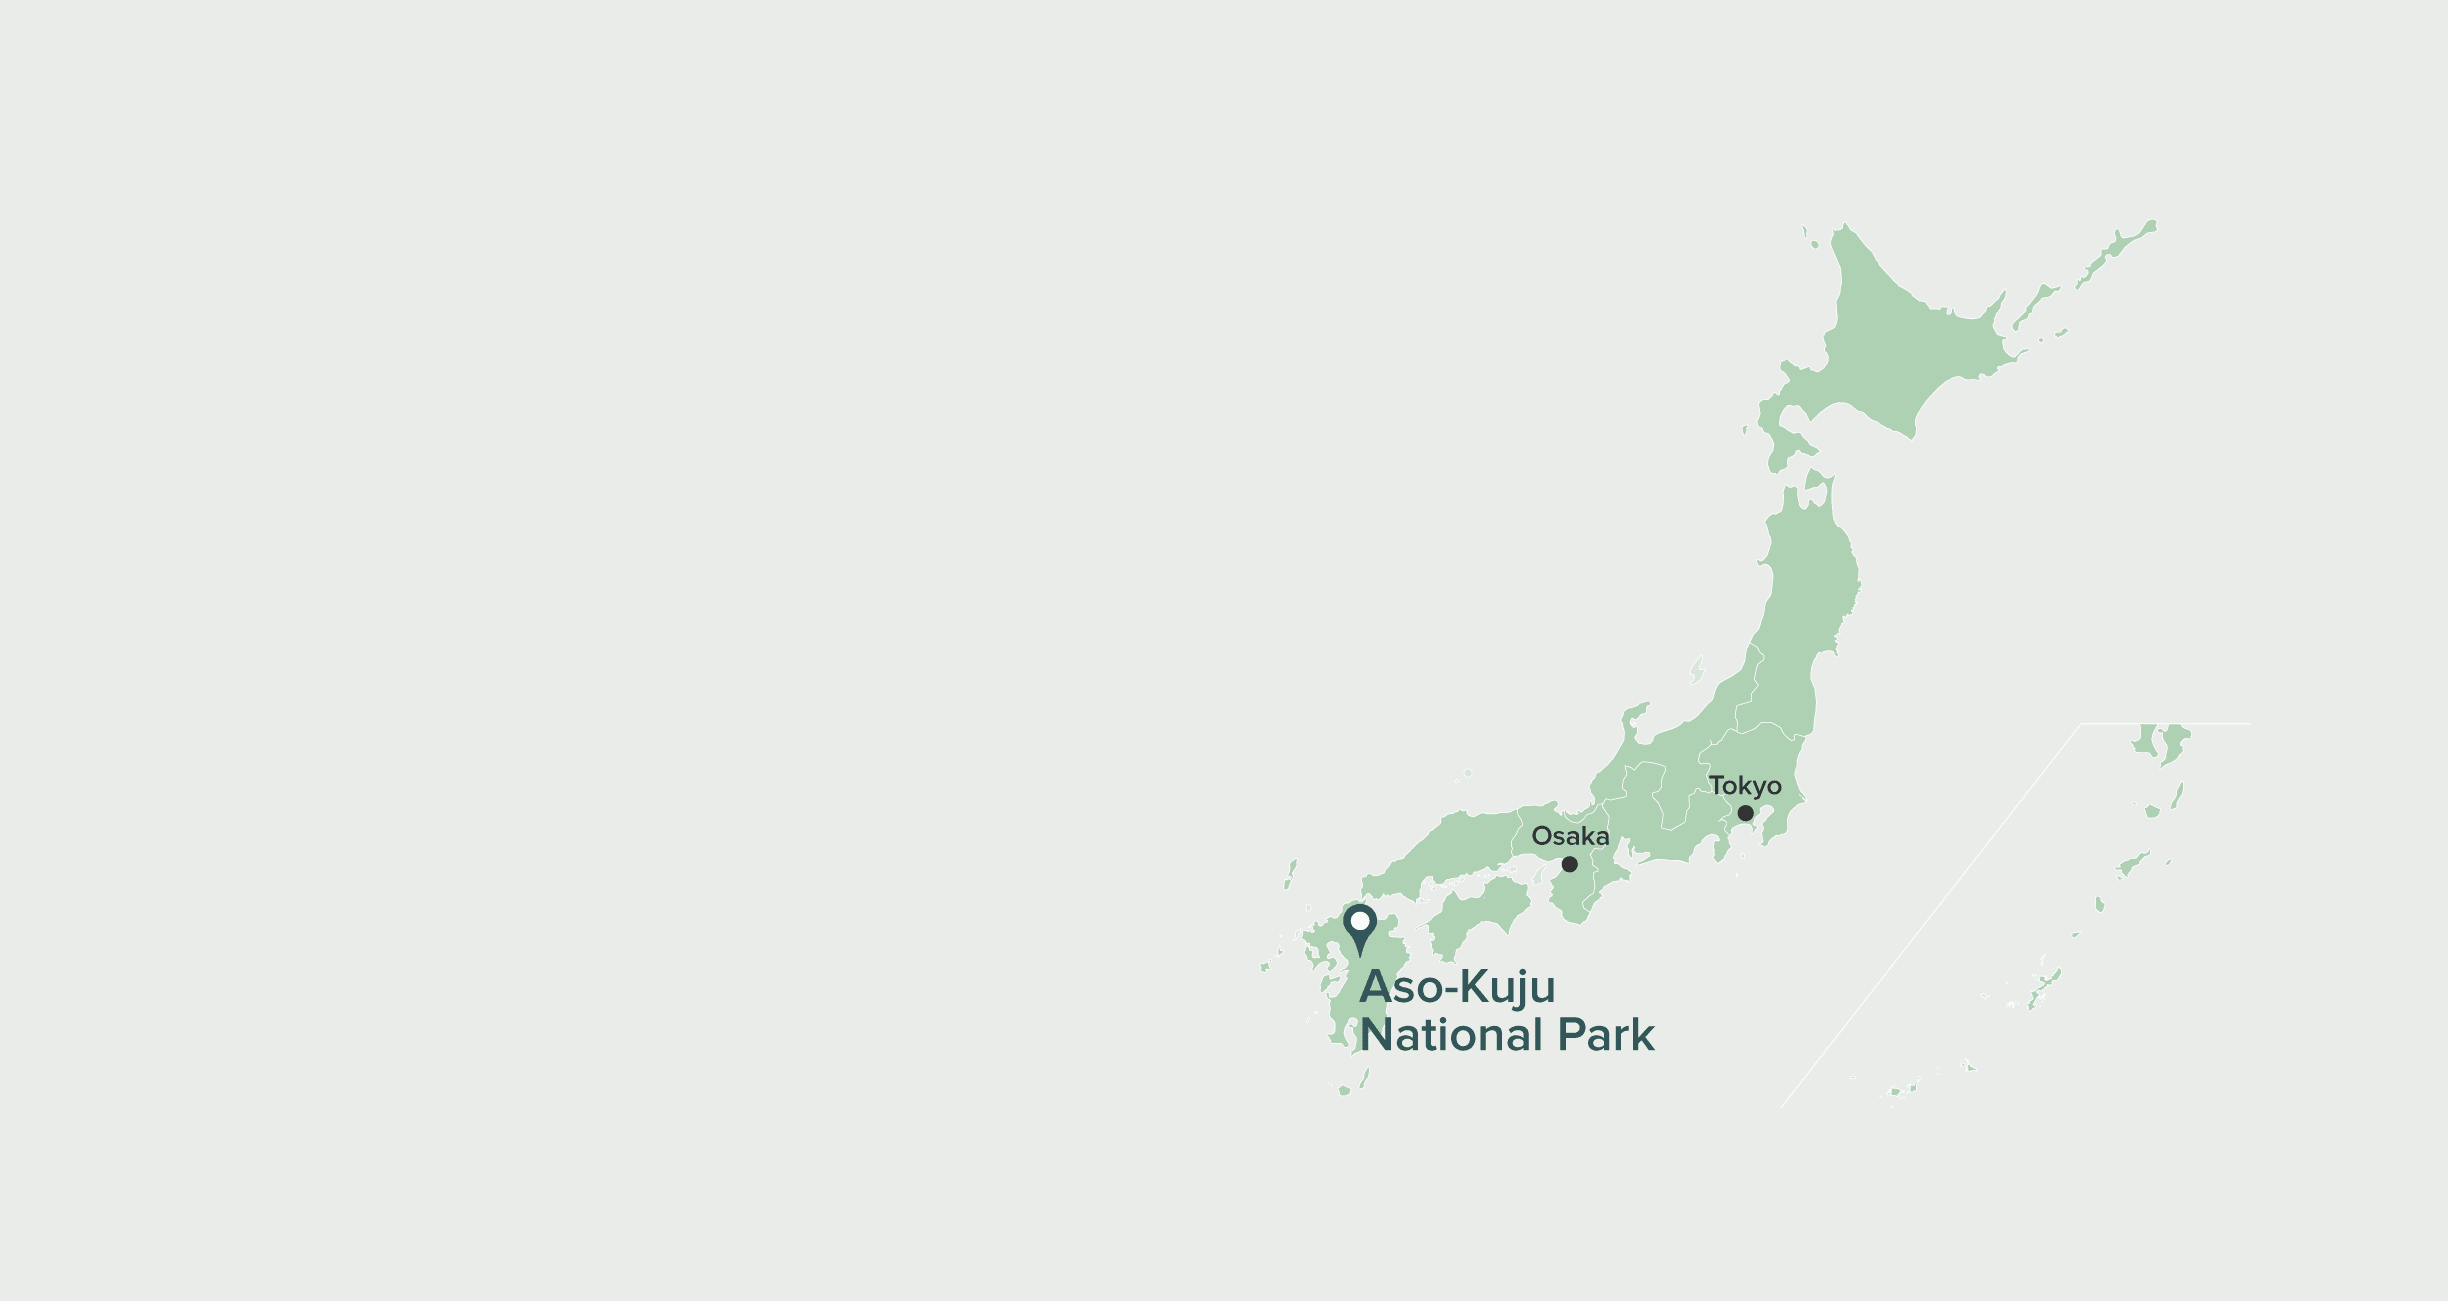 Parks Overview